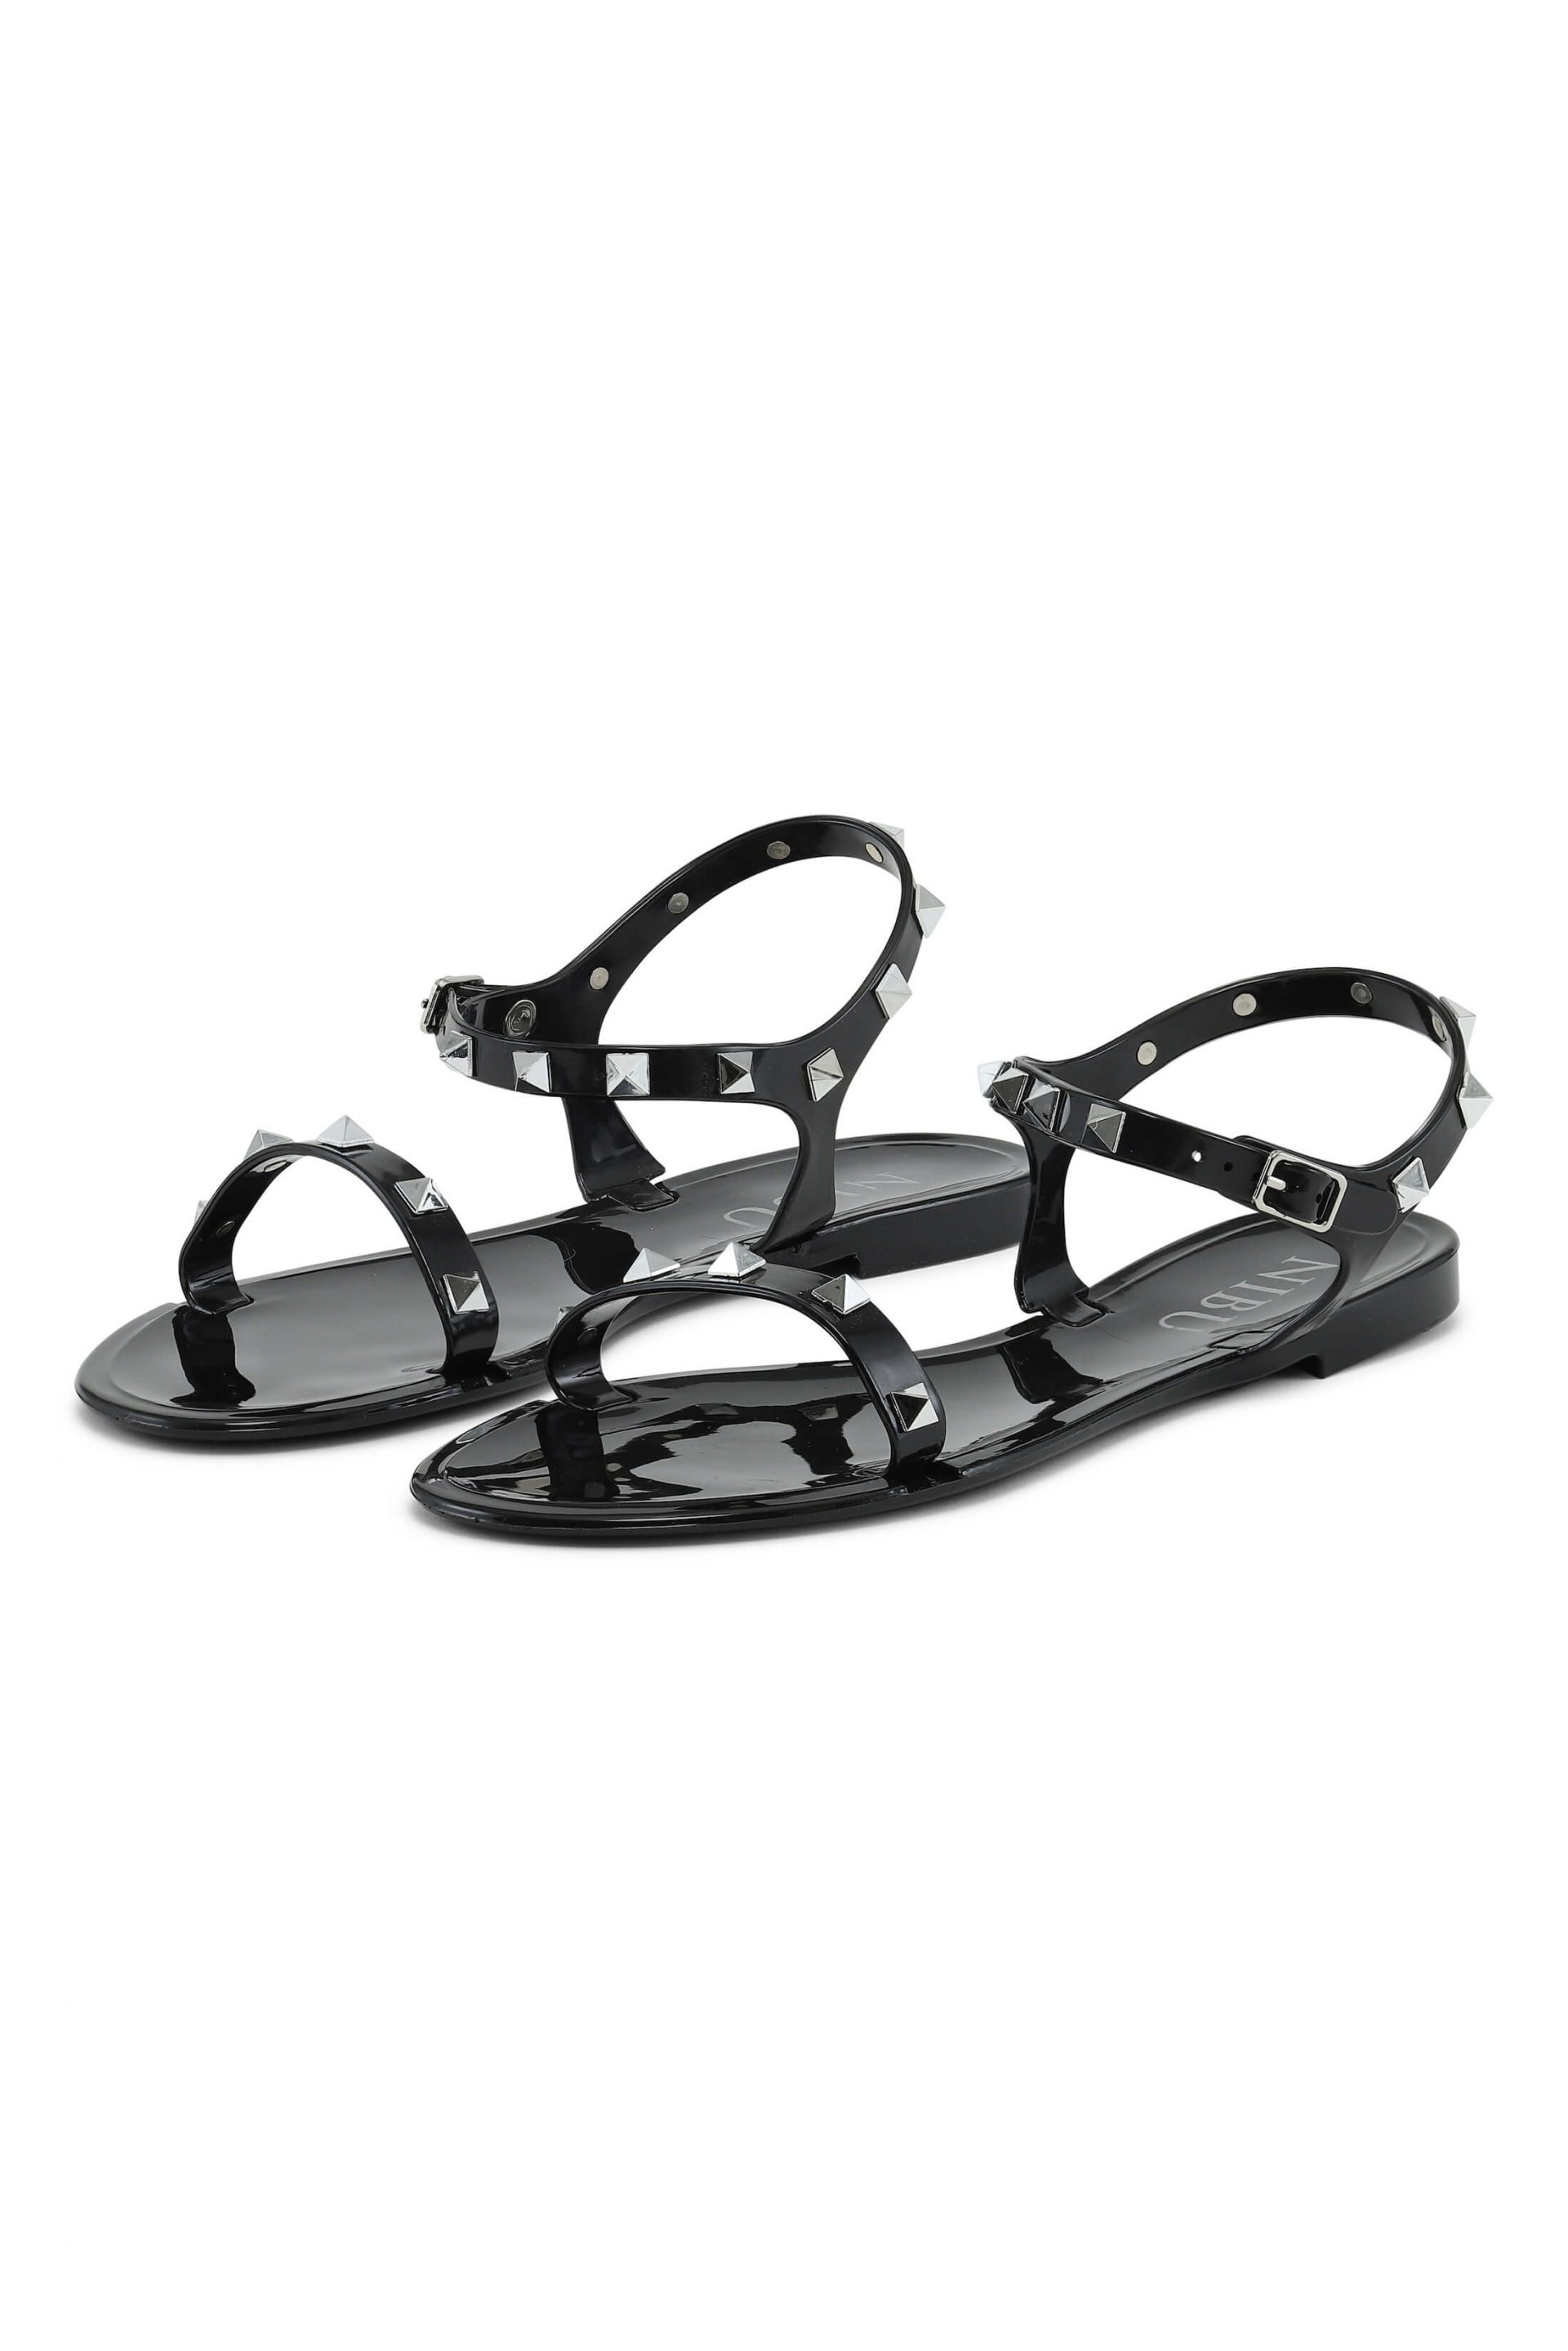 Black sandals with silverlook details